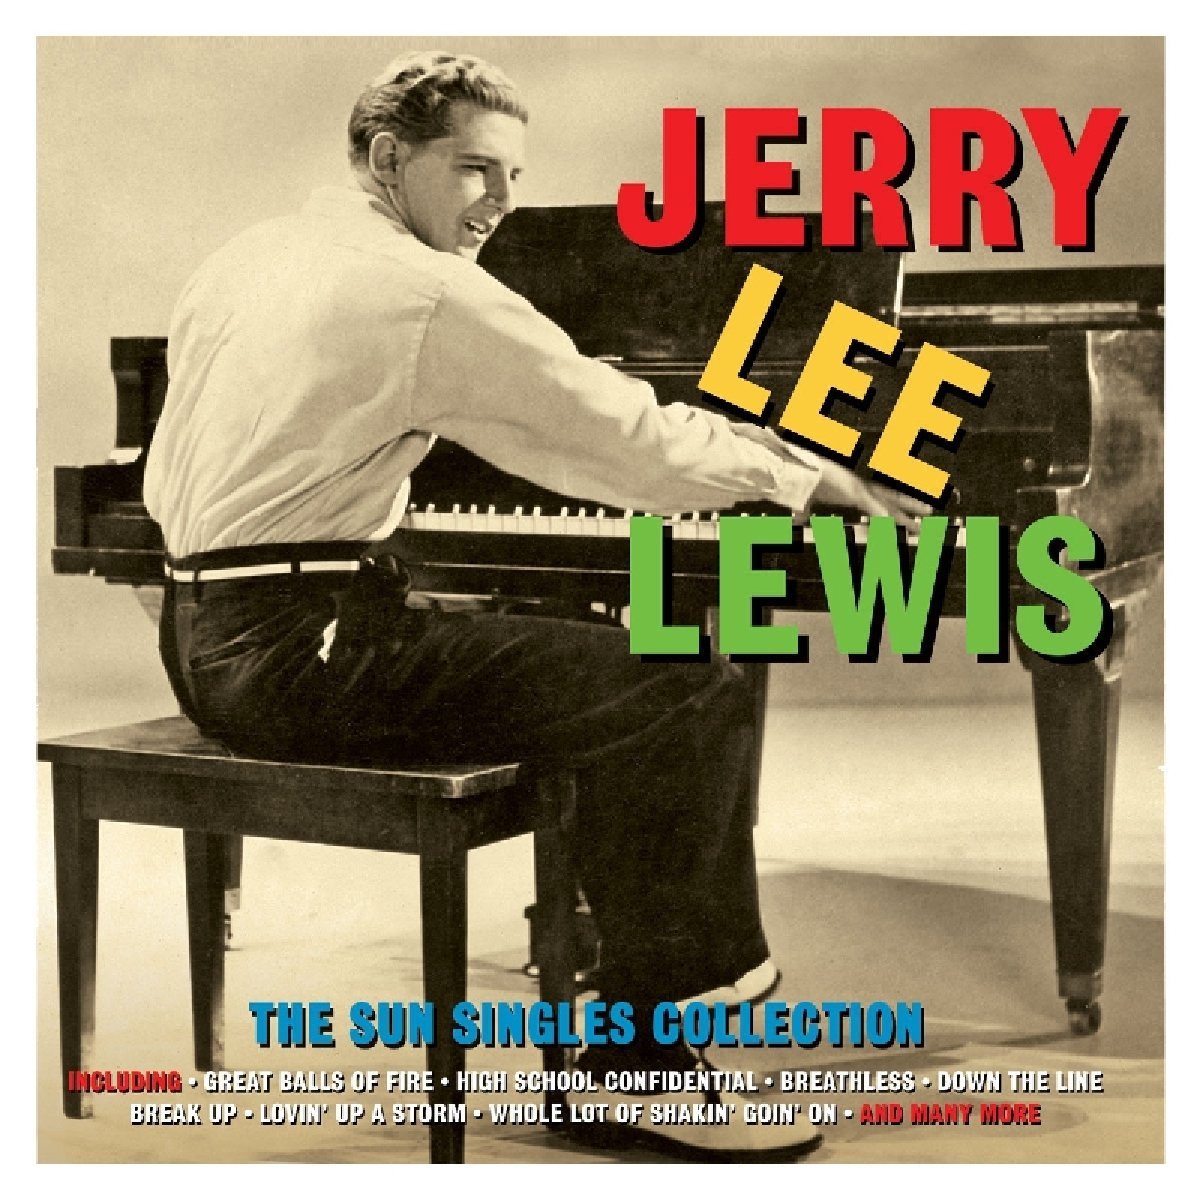 JERRY LEE LEWIS: The Sun Singles Collection (2 CDS)